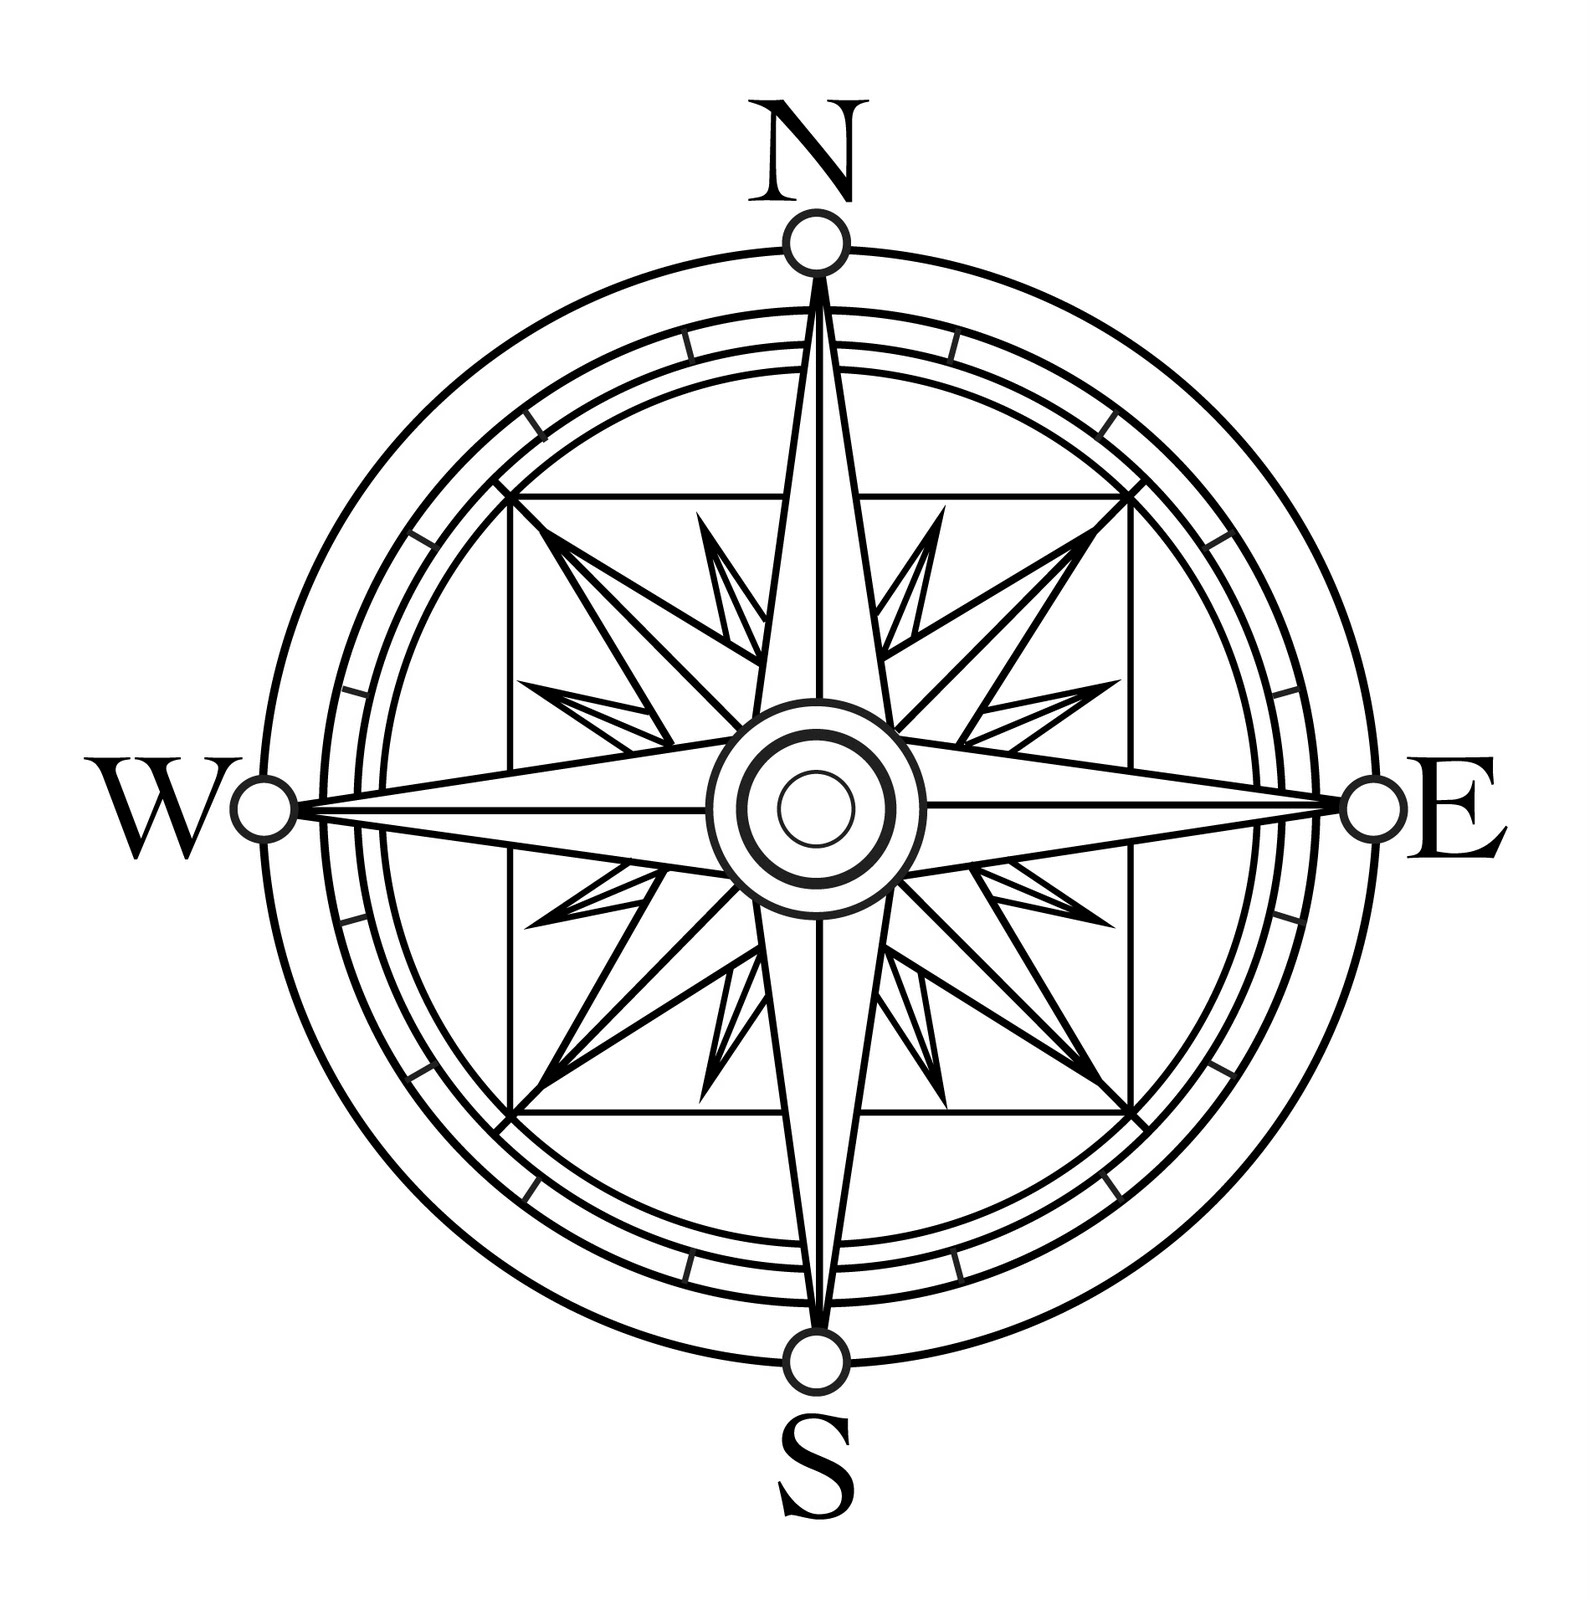 1590x1600 Compass Rose Coloring Page Murderthestout